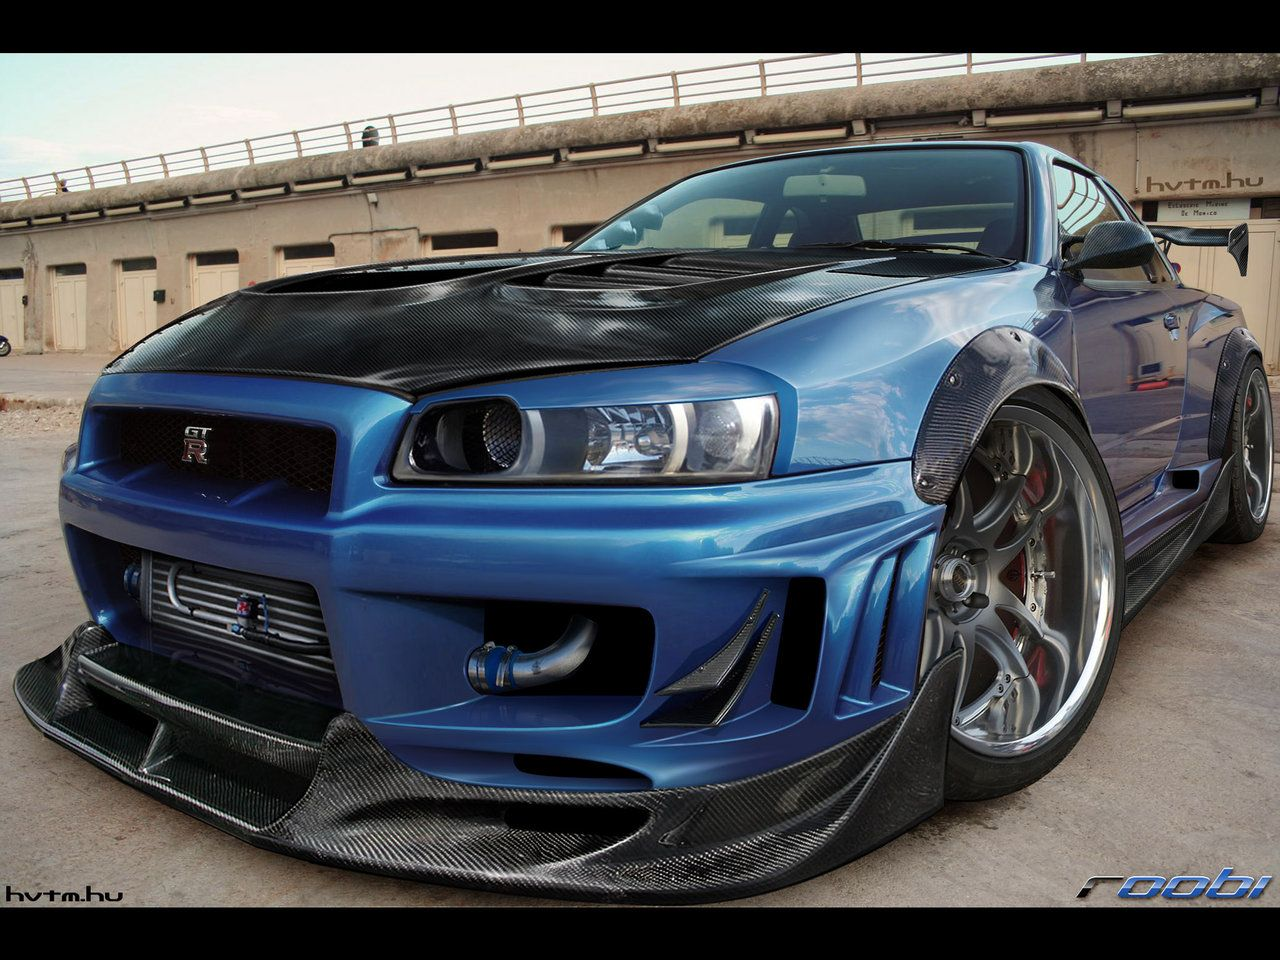 Nissan Skyline GT R Bad Ass This Is My Fav Car By The Way